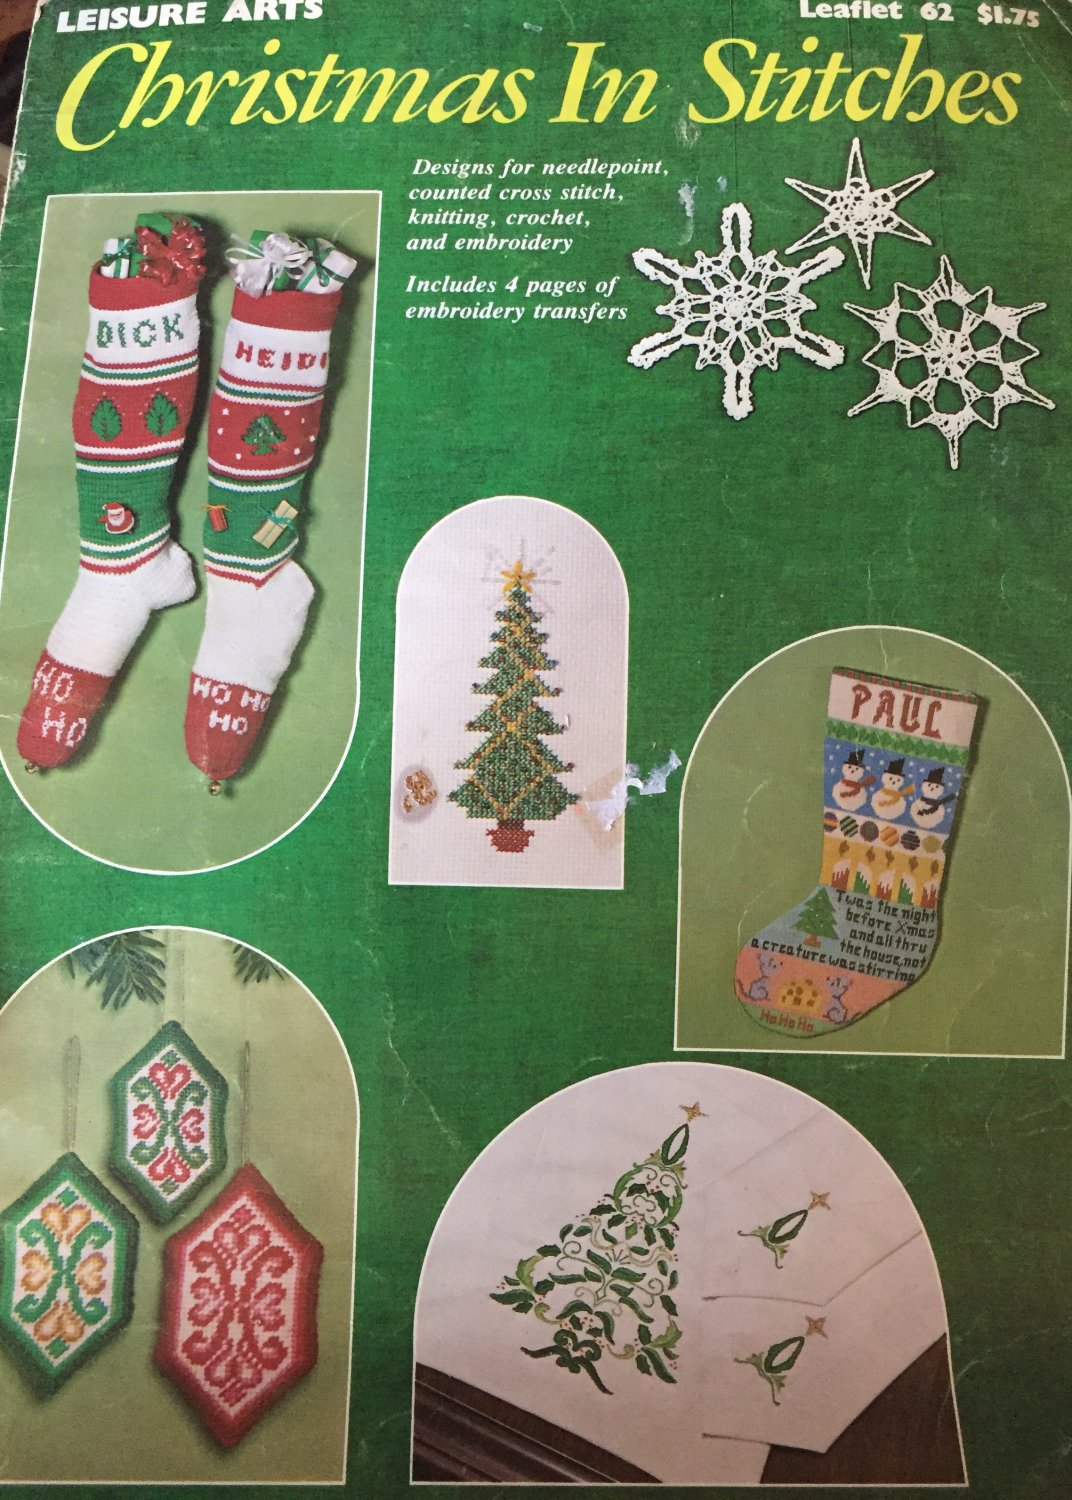 Christmas In Stitches Leisure Arts Crochet 62 Needlepoint, Knitting, cross stitch Embroidery